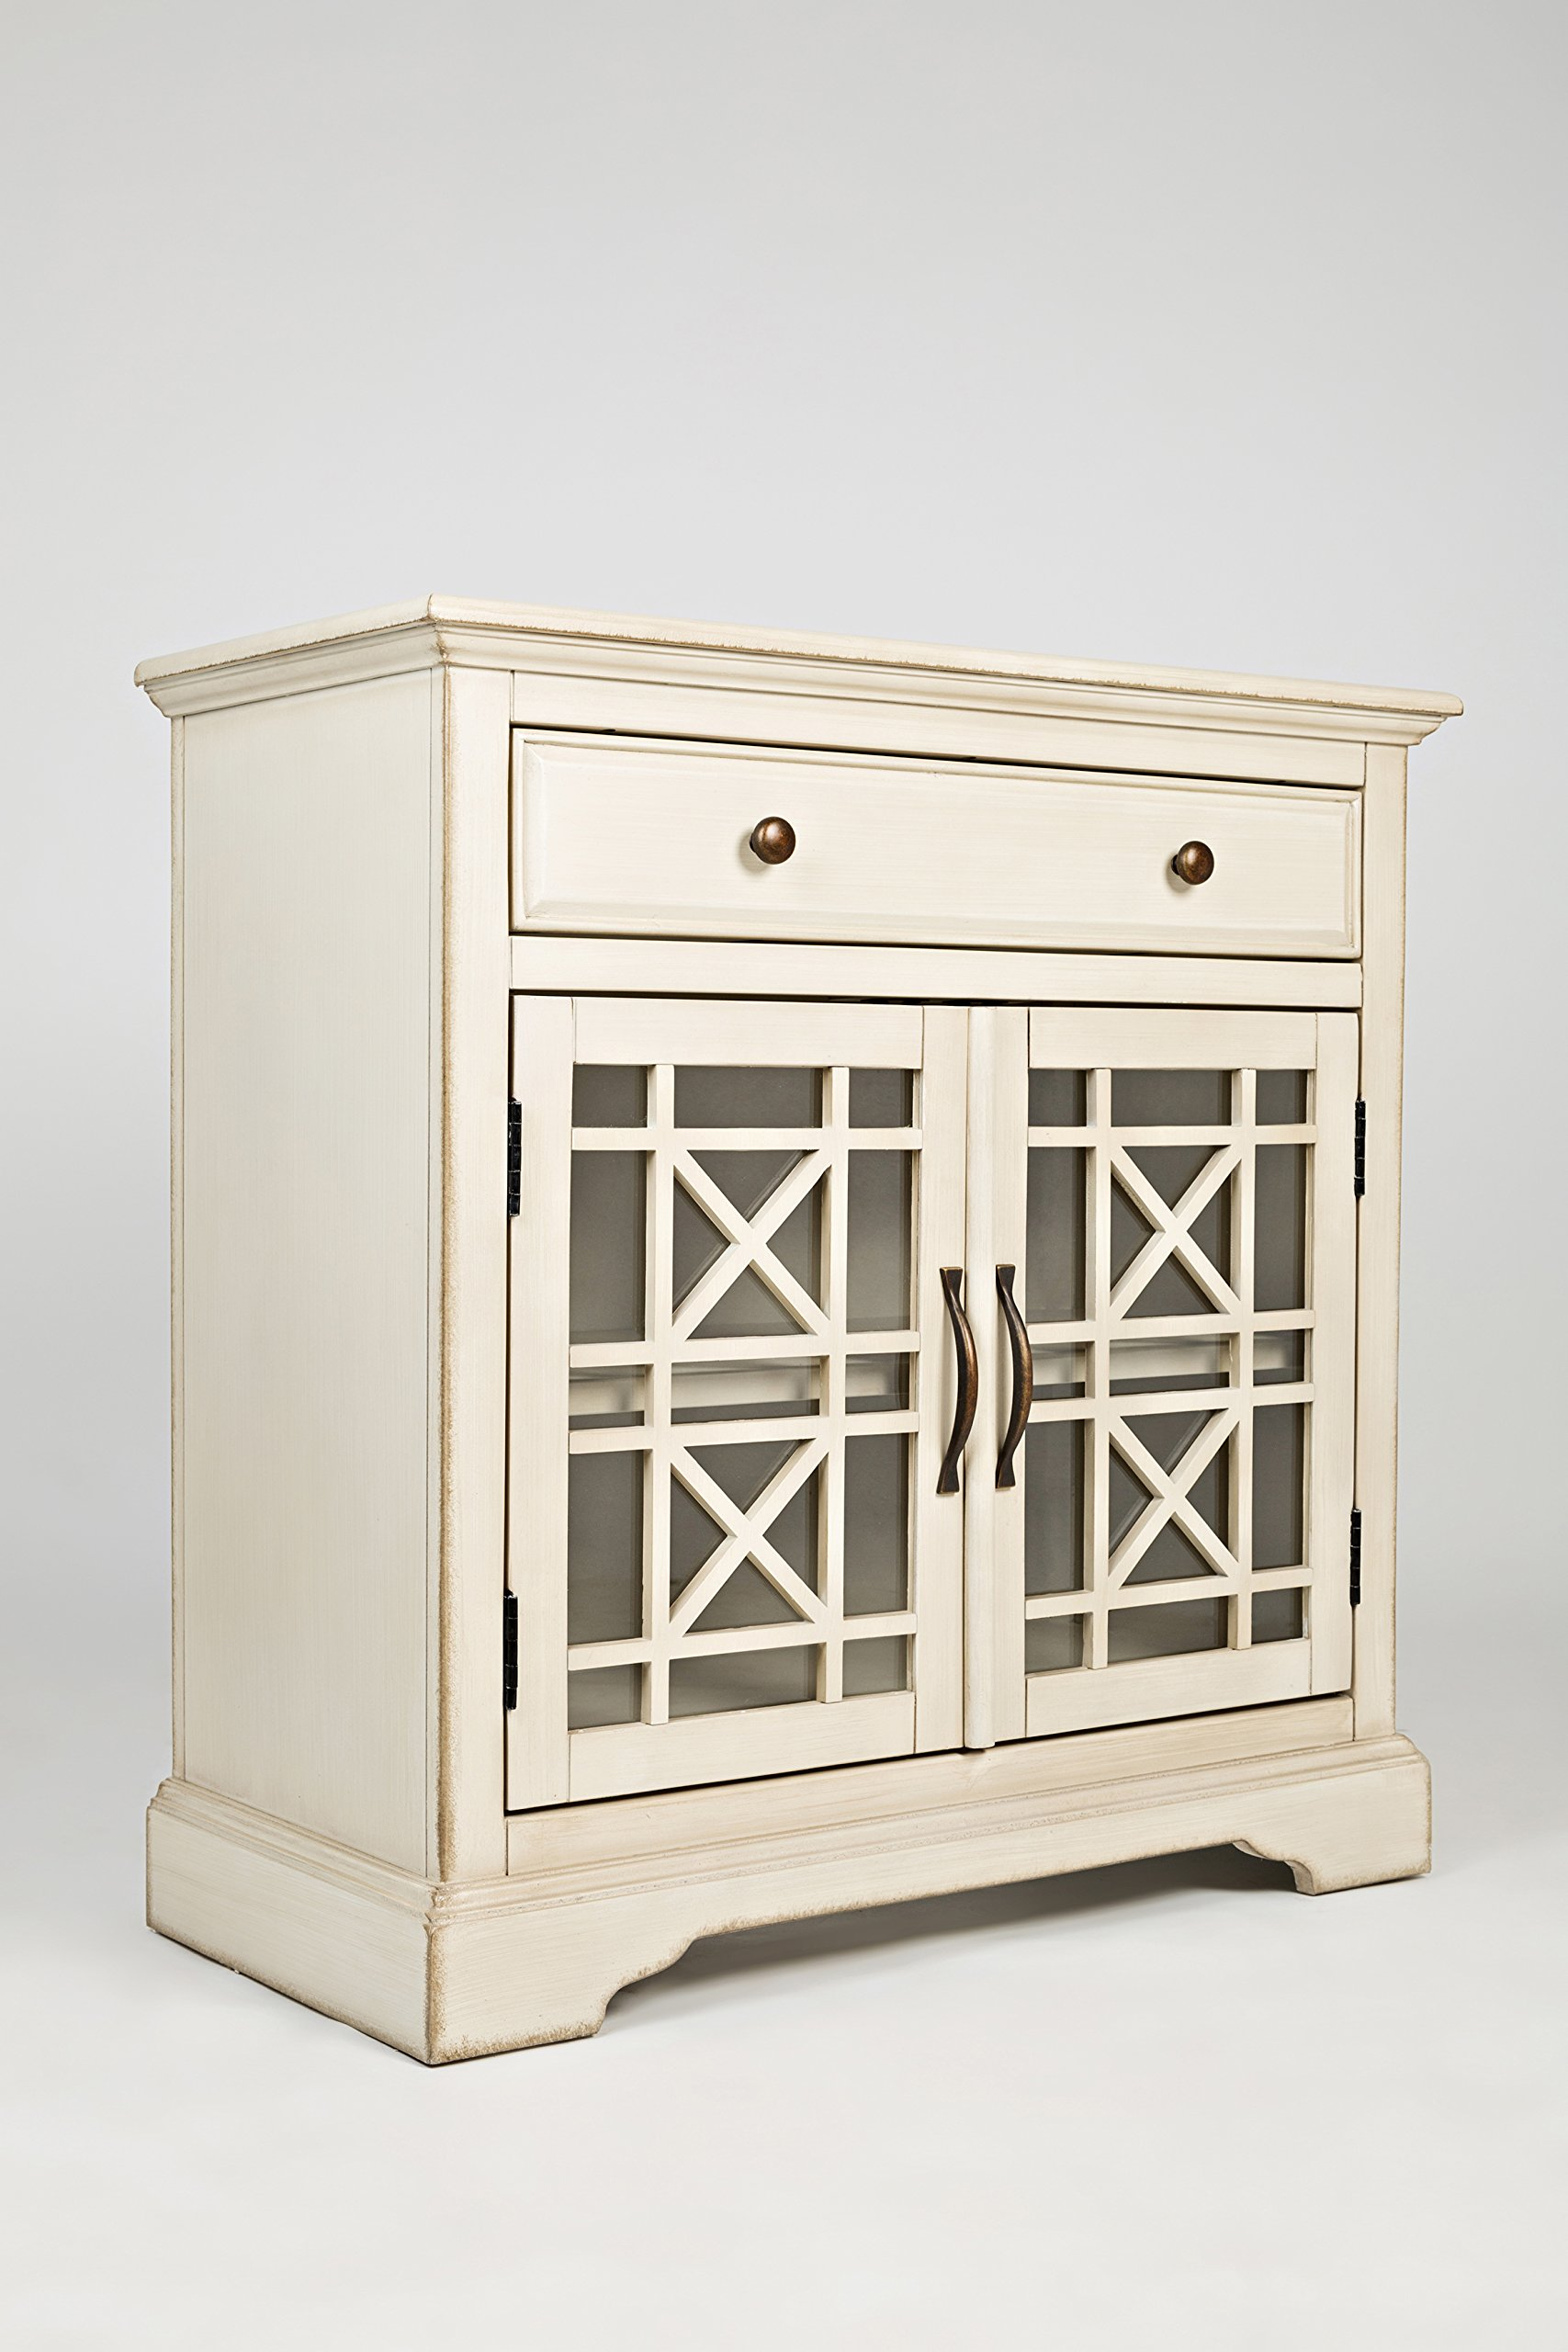 "Jofran: , Craftsman, Accent Chest, 32""W X 15""D X 32""H, Antique Cream Finish, (Set of 1) - One drawer Two doors Drawer dimensions: 26""W x 12""D x 8. 75""H - dressers-bedroom-furniture, bedroom-furniture, bedroom - 81W9 3NMGdL -"